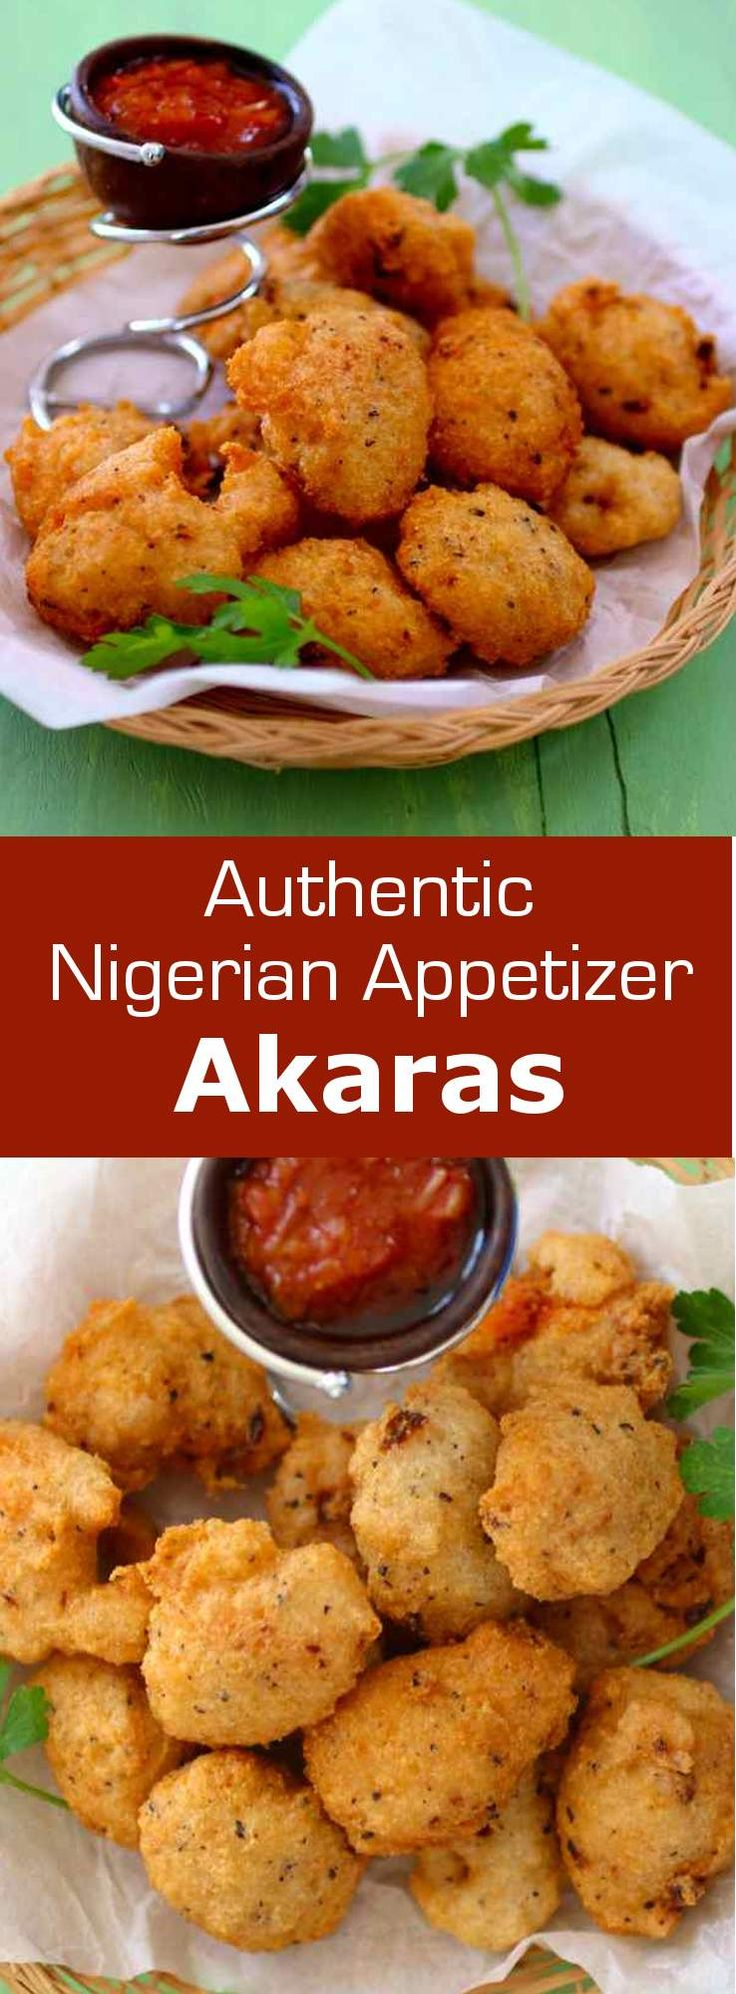 Akara is a delicious fried snack composed of black-eyed peas originally from Nigeria, but also popular throughout West Africa and Brazil.